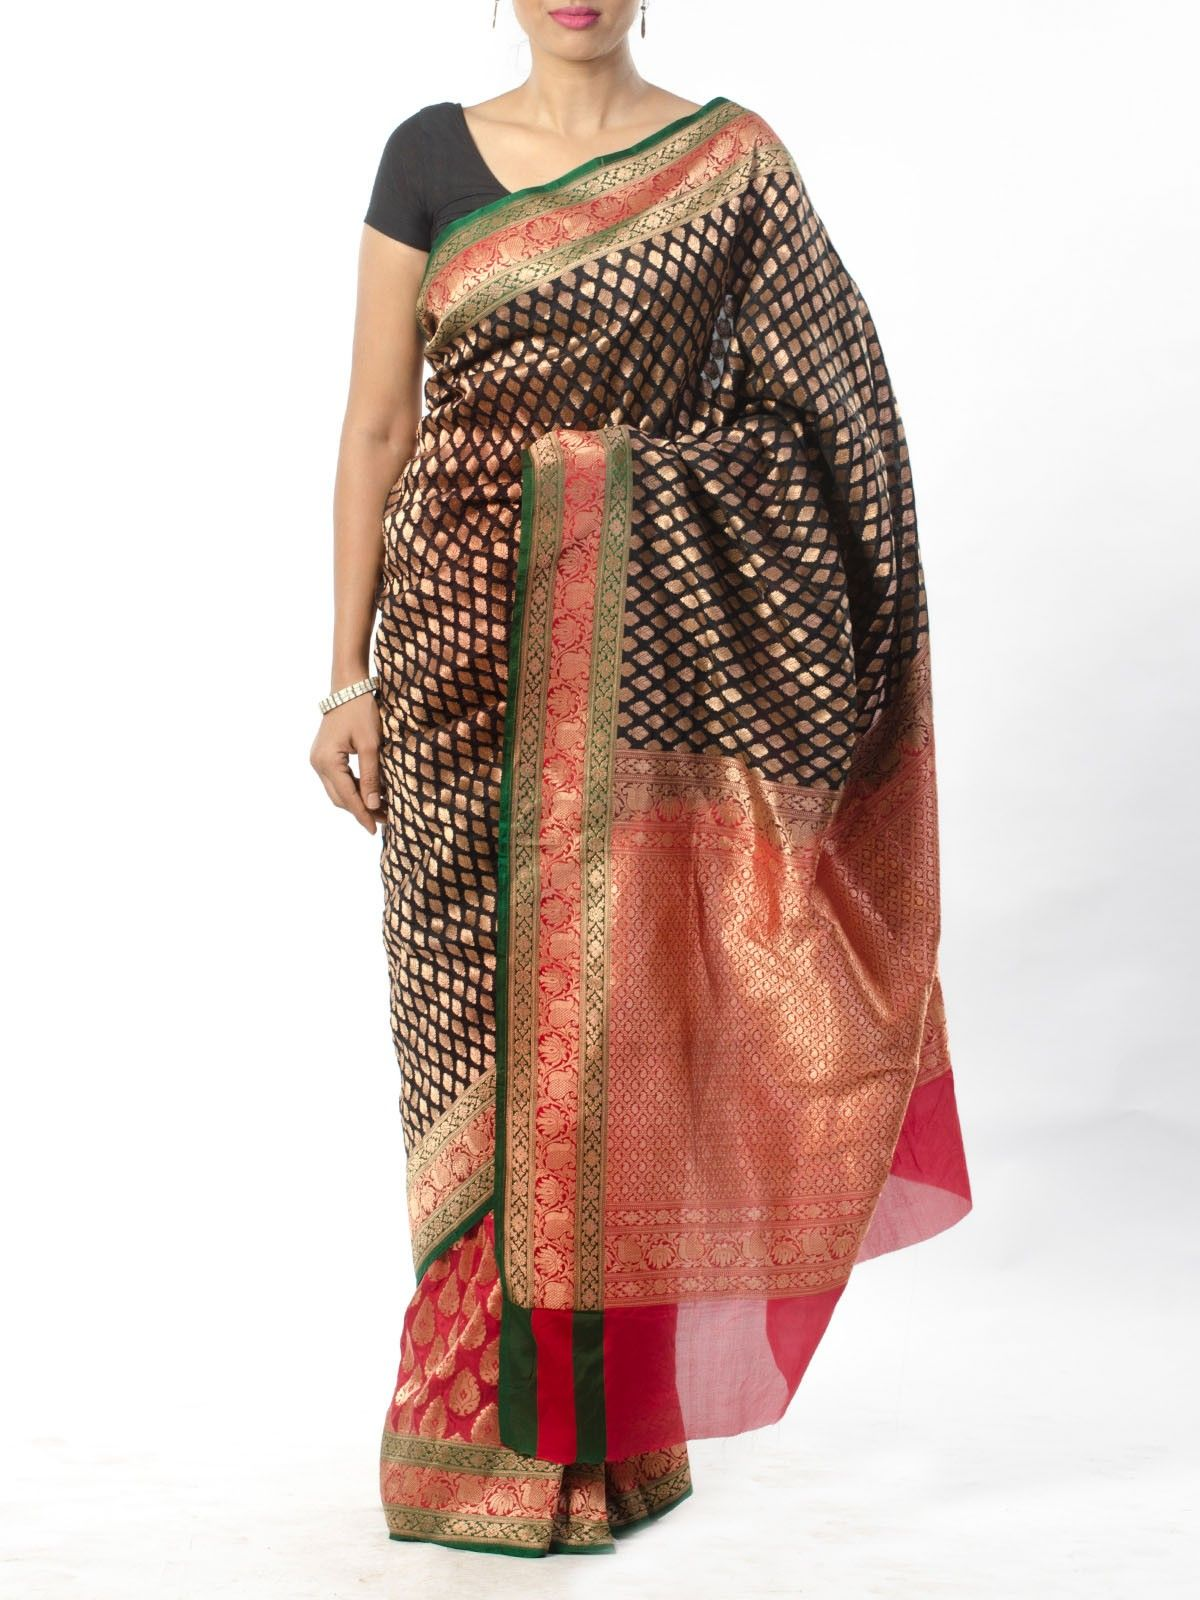 Black Red Banarsi Saree with Zari border